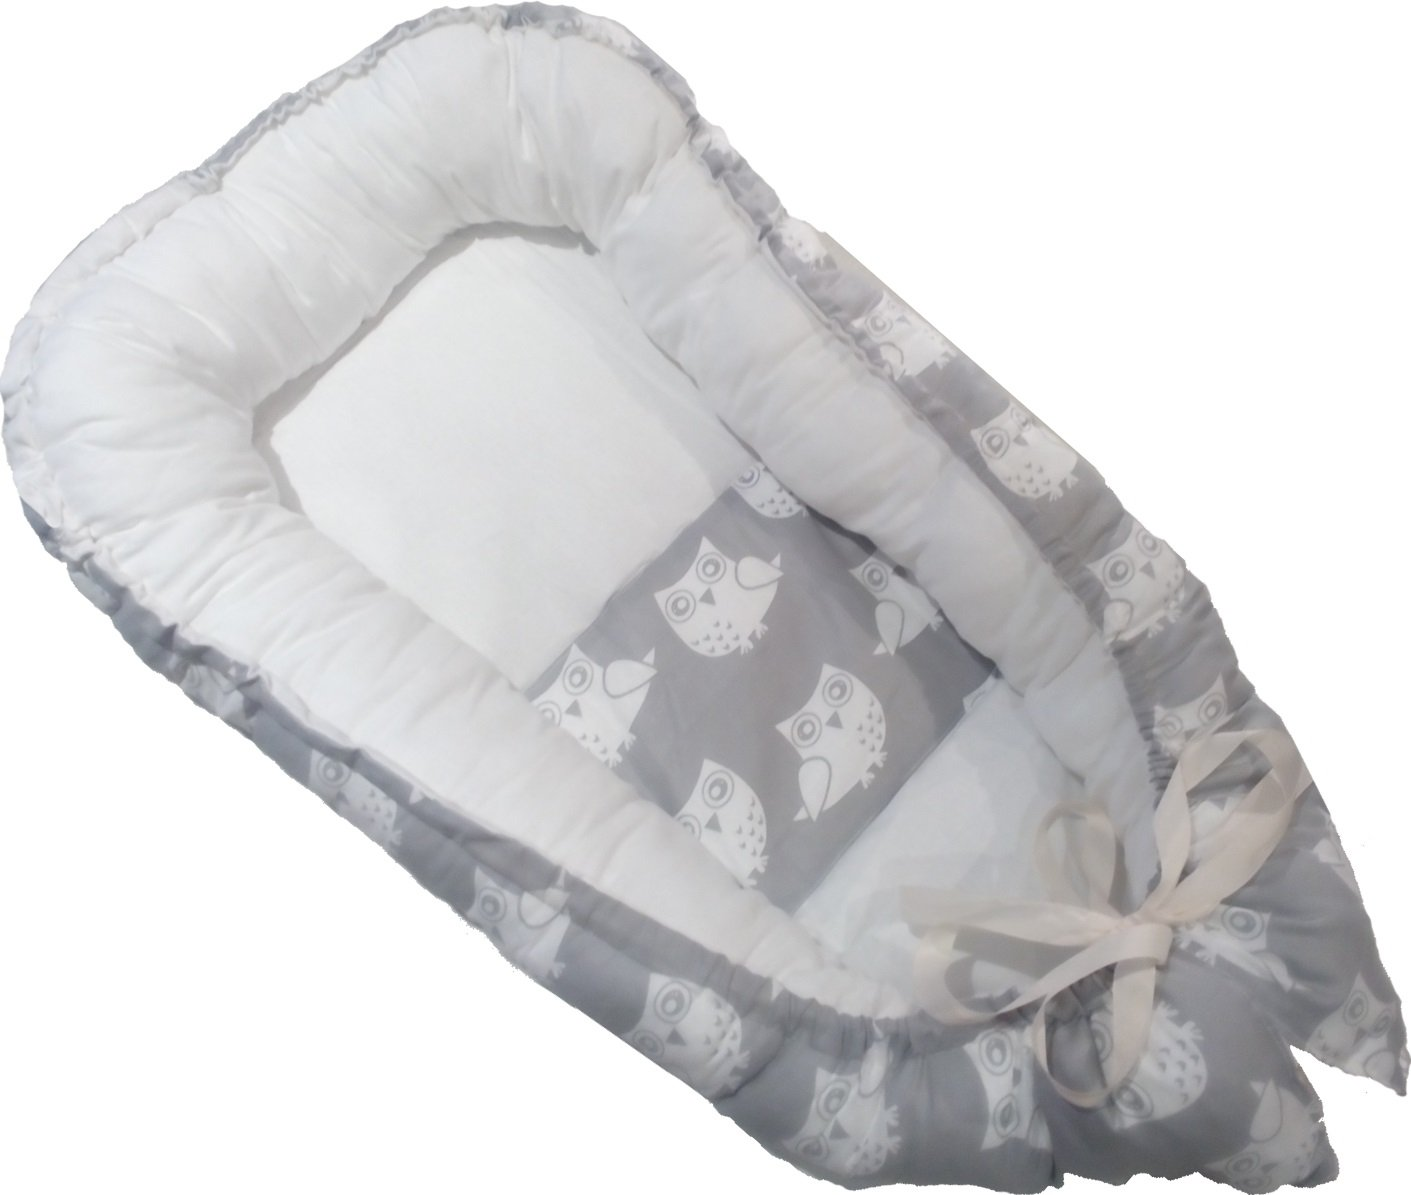 BabeeKeepa Baby Nest Bassinet for Bed - Certified Hypoallergenic & Breathable